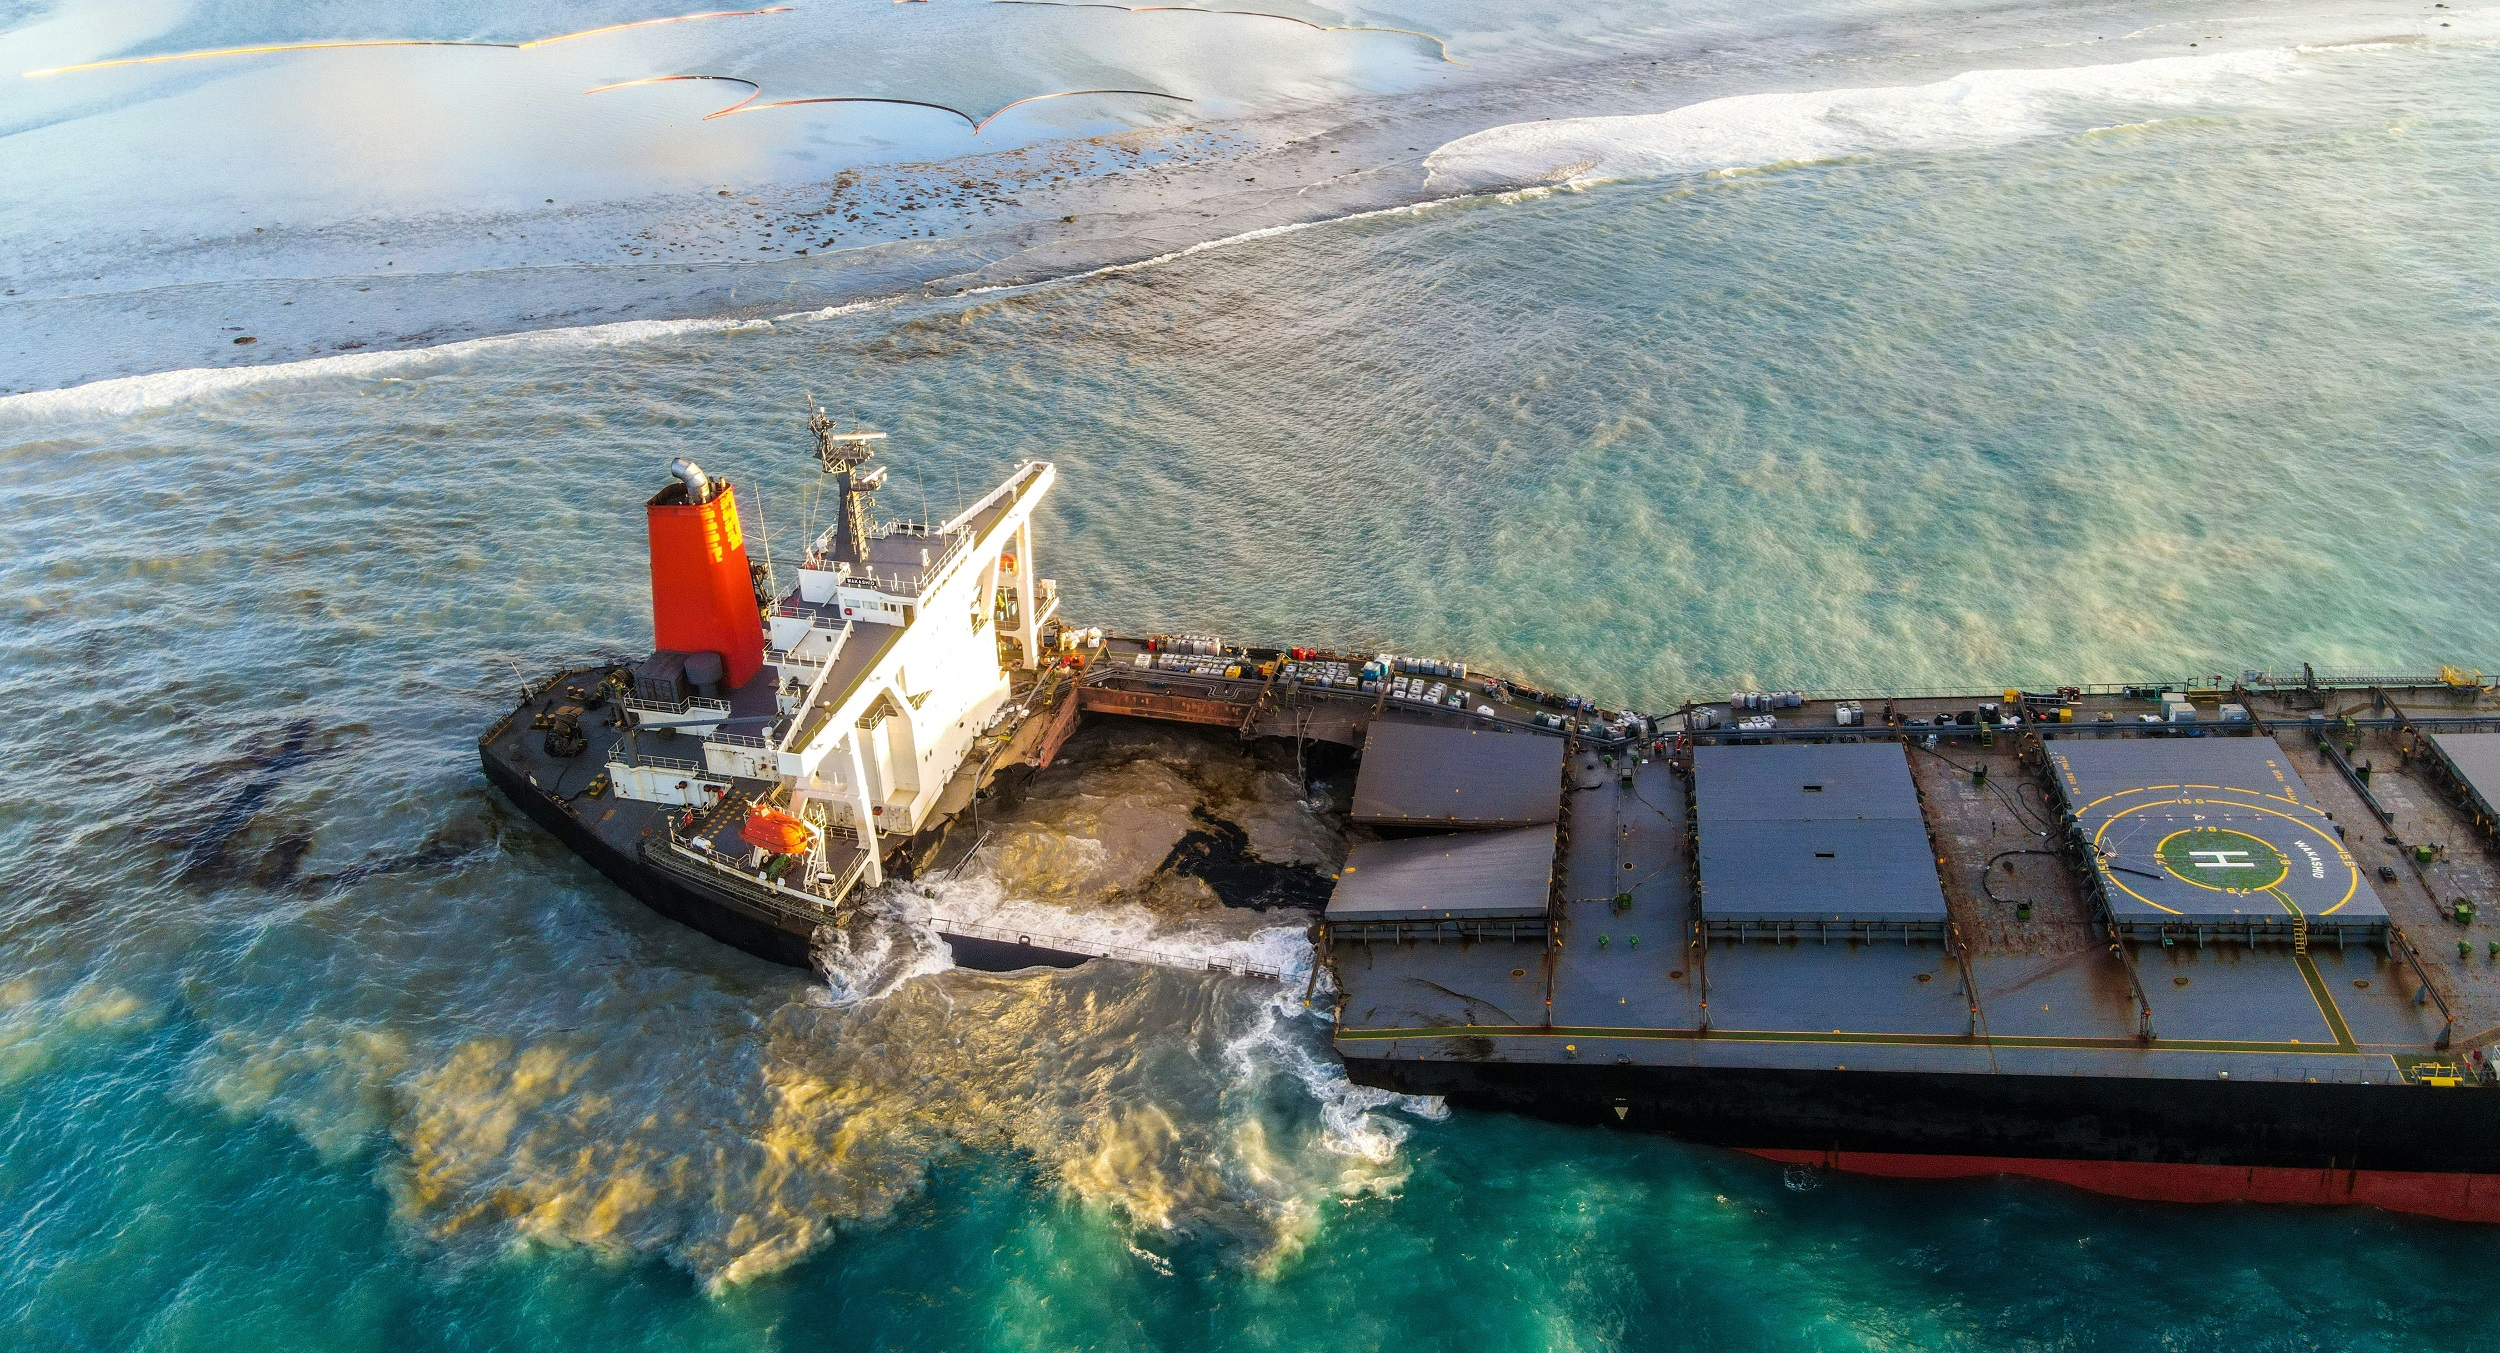 Mauritius: Coral reefs threatened by sunken oil vessel